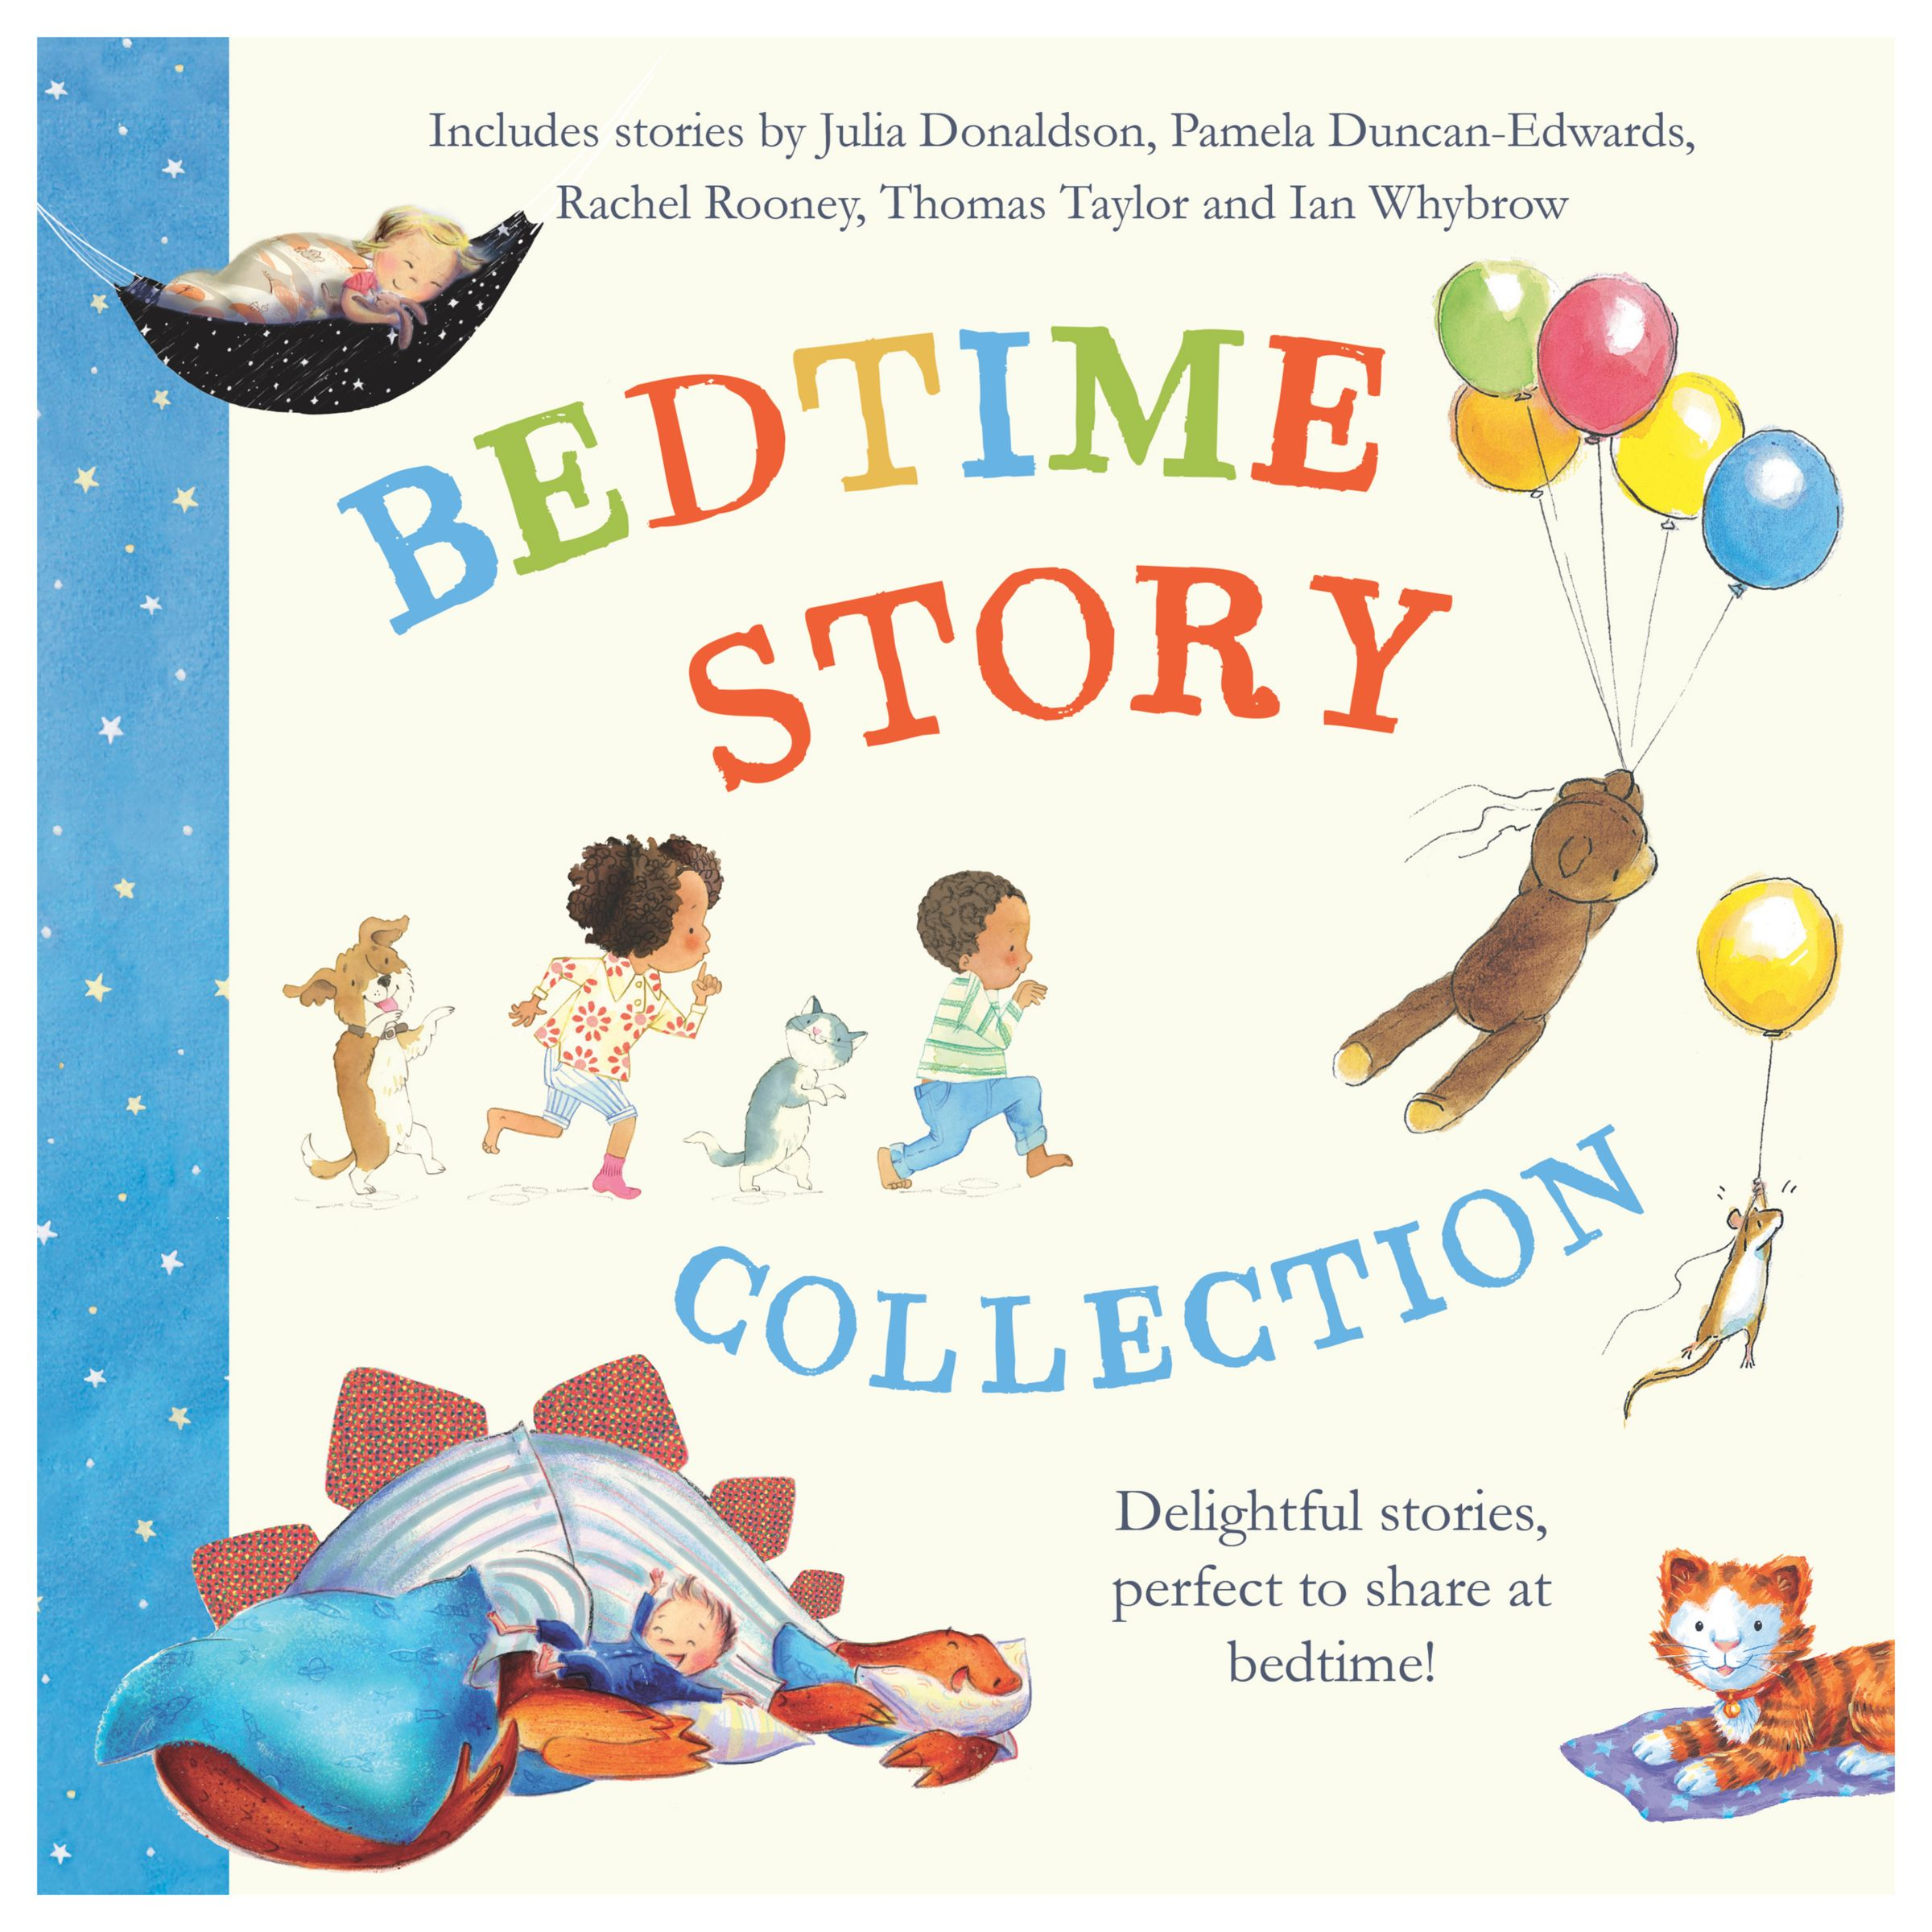 Macmillan Bedtime Story Collection Children's Book